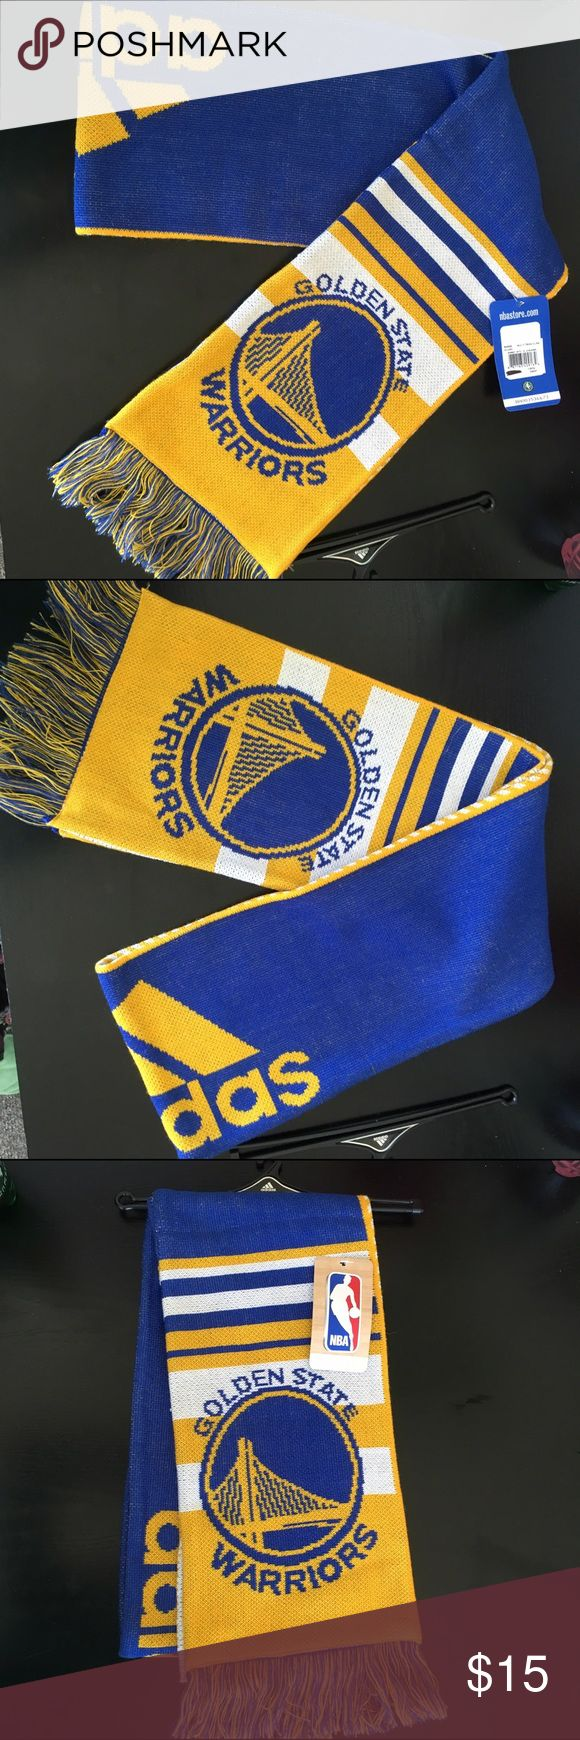 Golden State Warriors Scarf Basketball Gold State Warriors Scarf brand new. Got as gift, nothing wrong with it. From NBA store .com adidas Accessories Scarves & Wraps